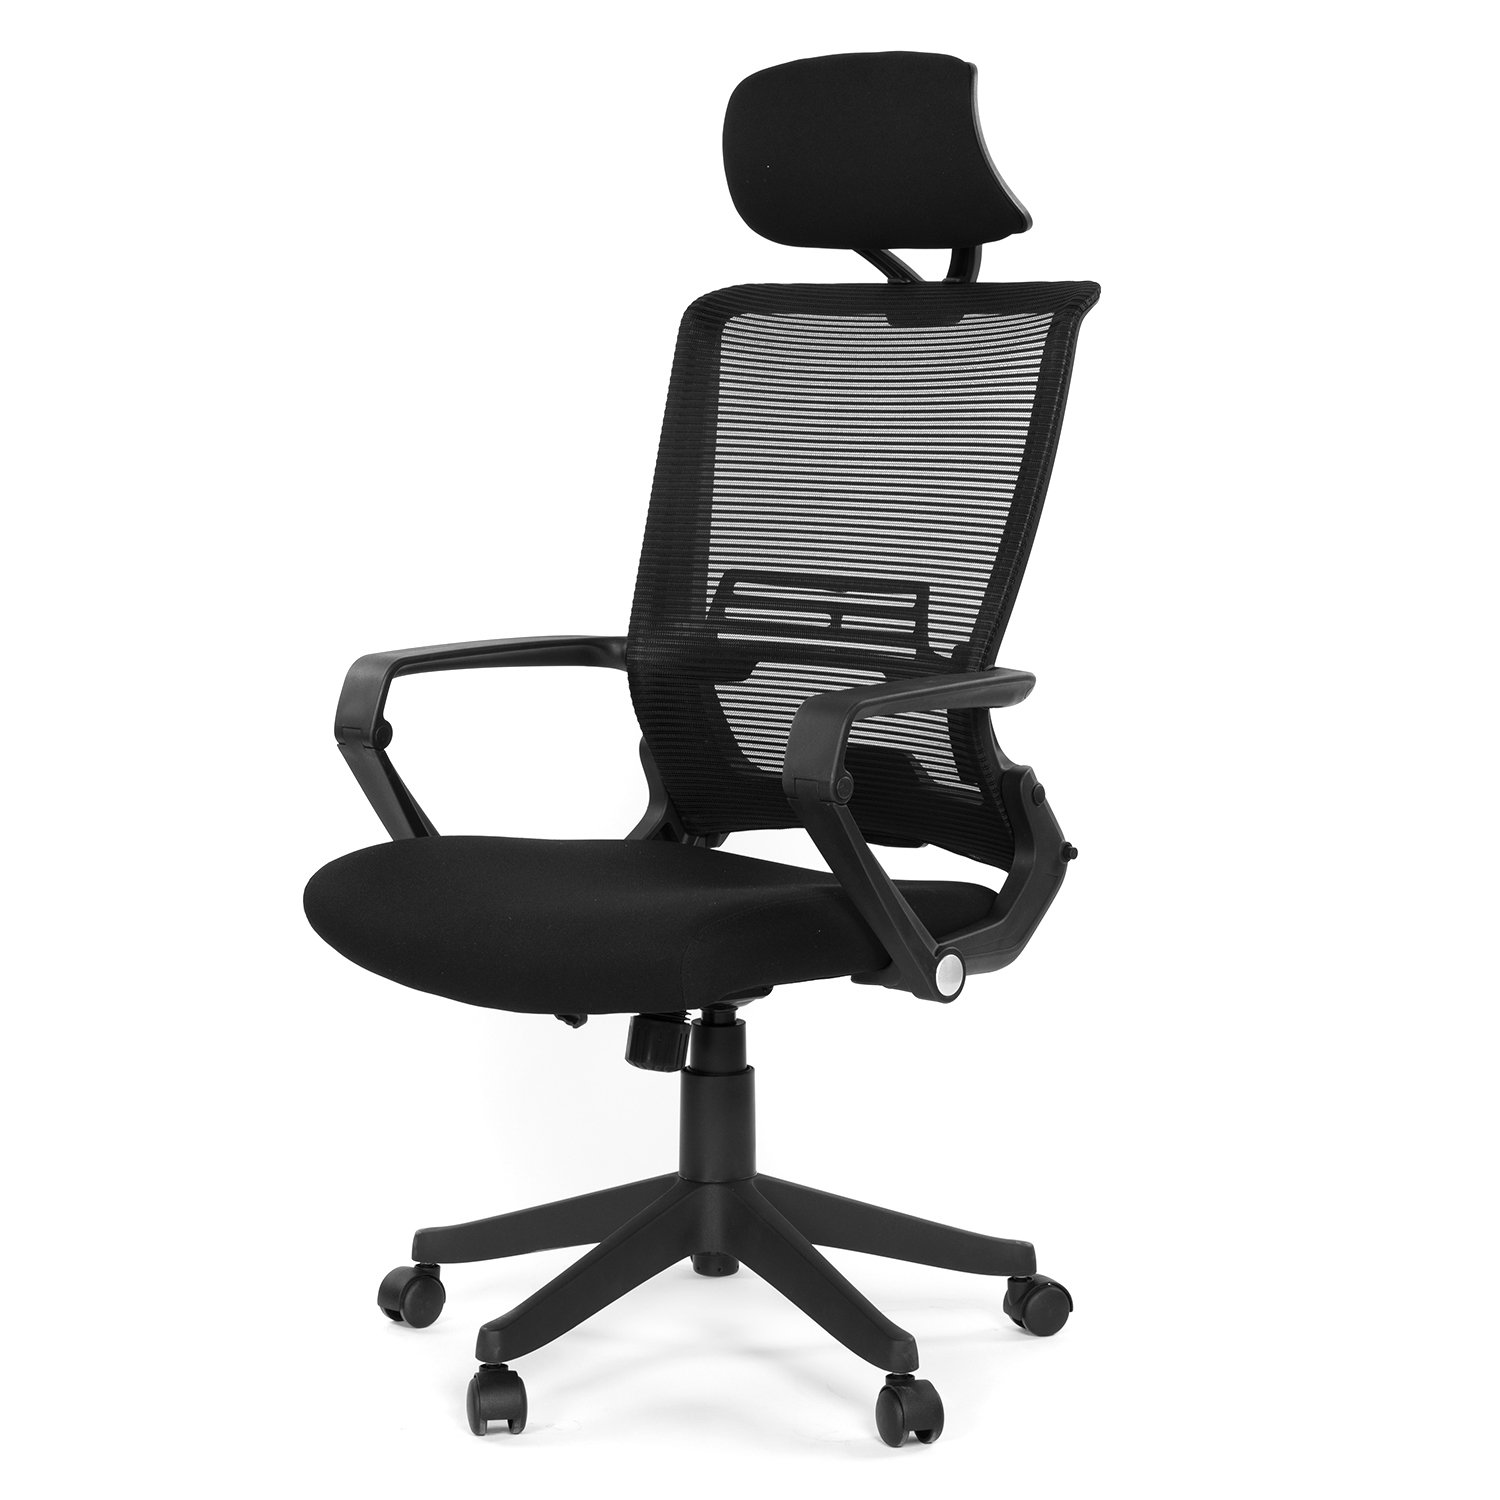 Amazoncom Greenforest Ergonomic Office Chair High Back Mesh With